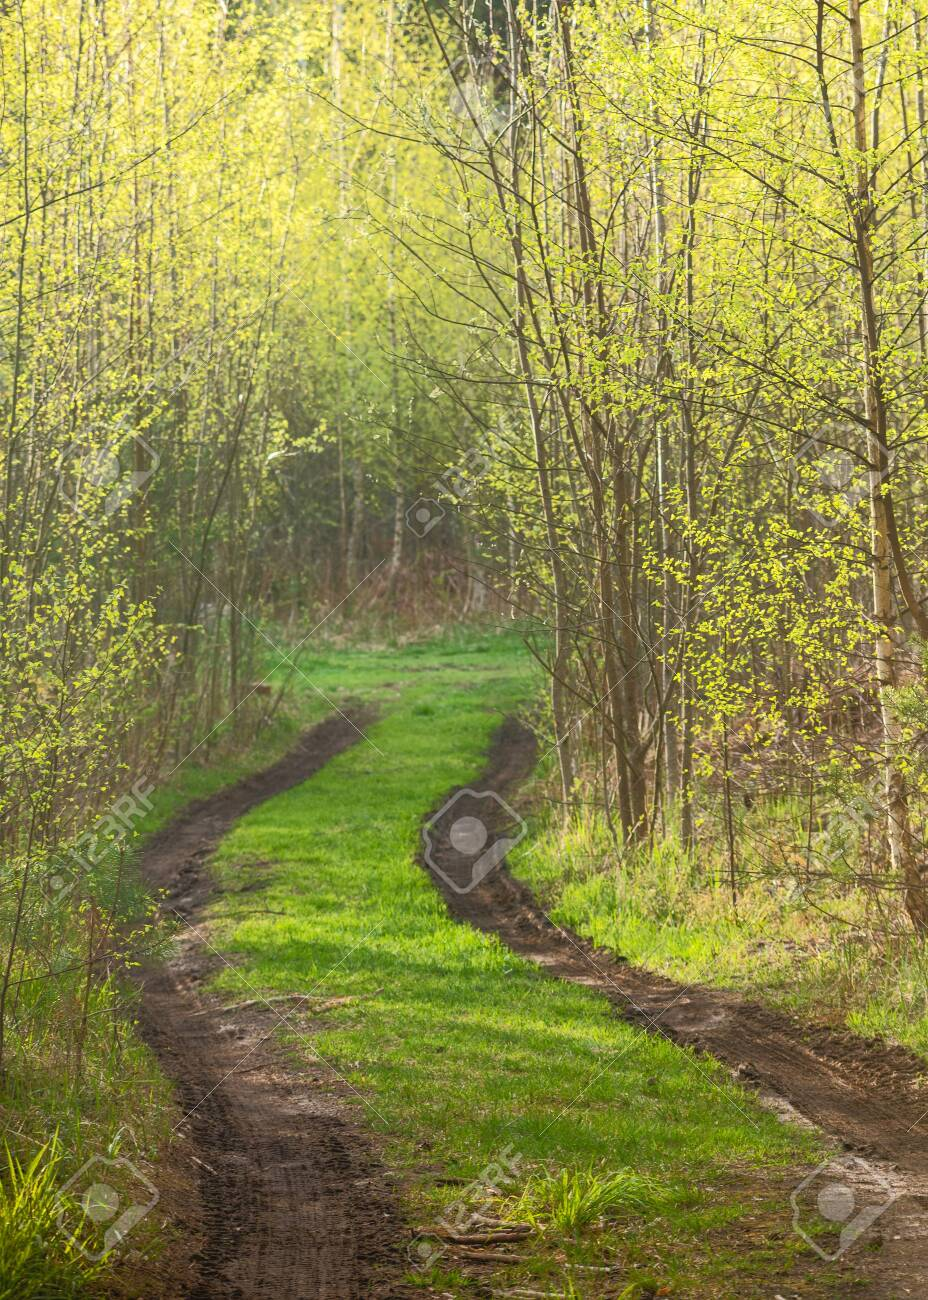 Forest path with spring mud among trees with young foliage - 147614199